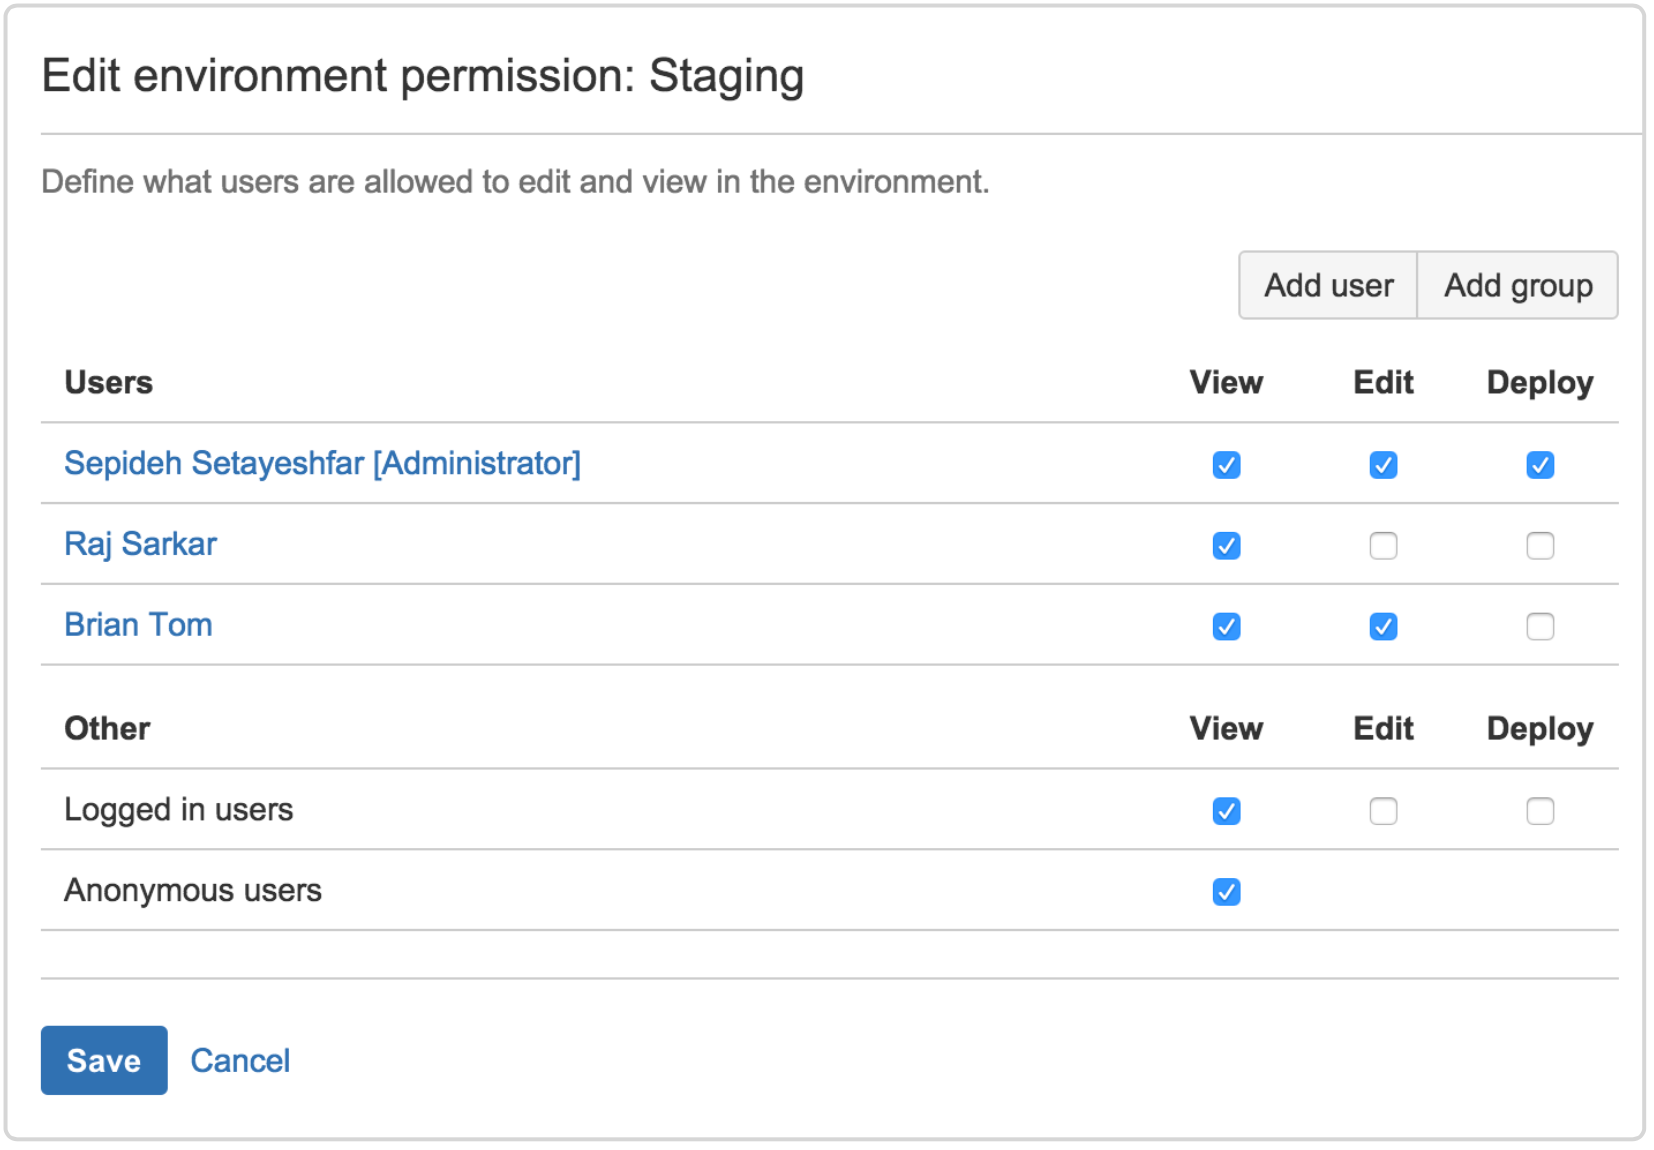 Edit environment permission: staging screenshot